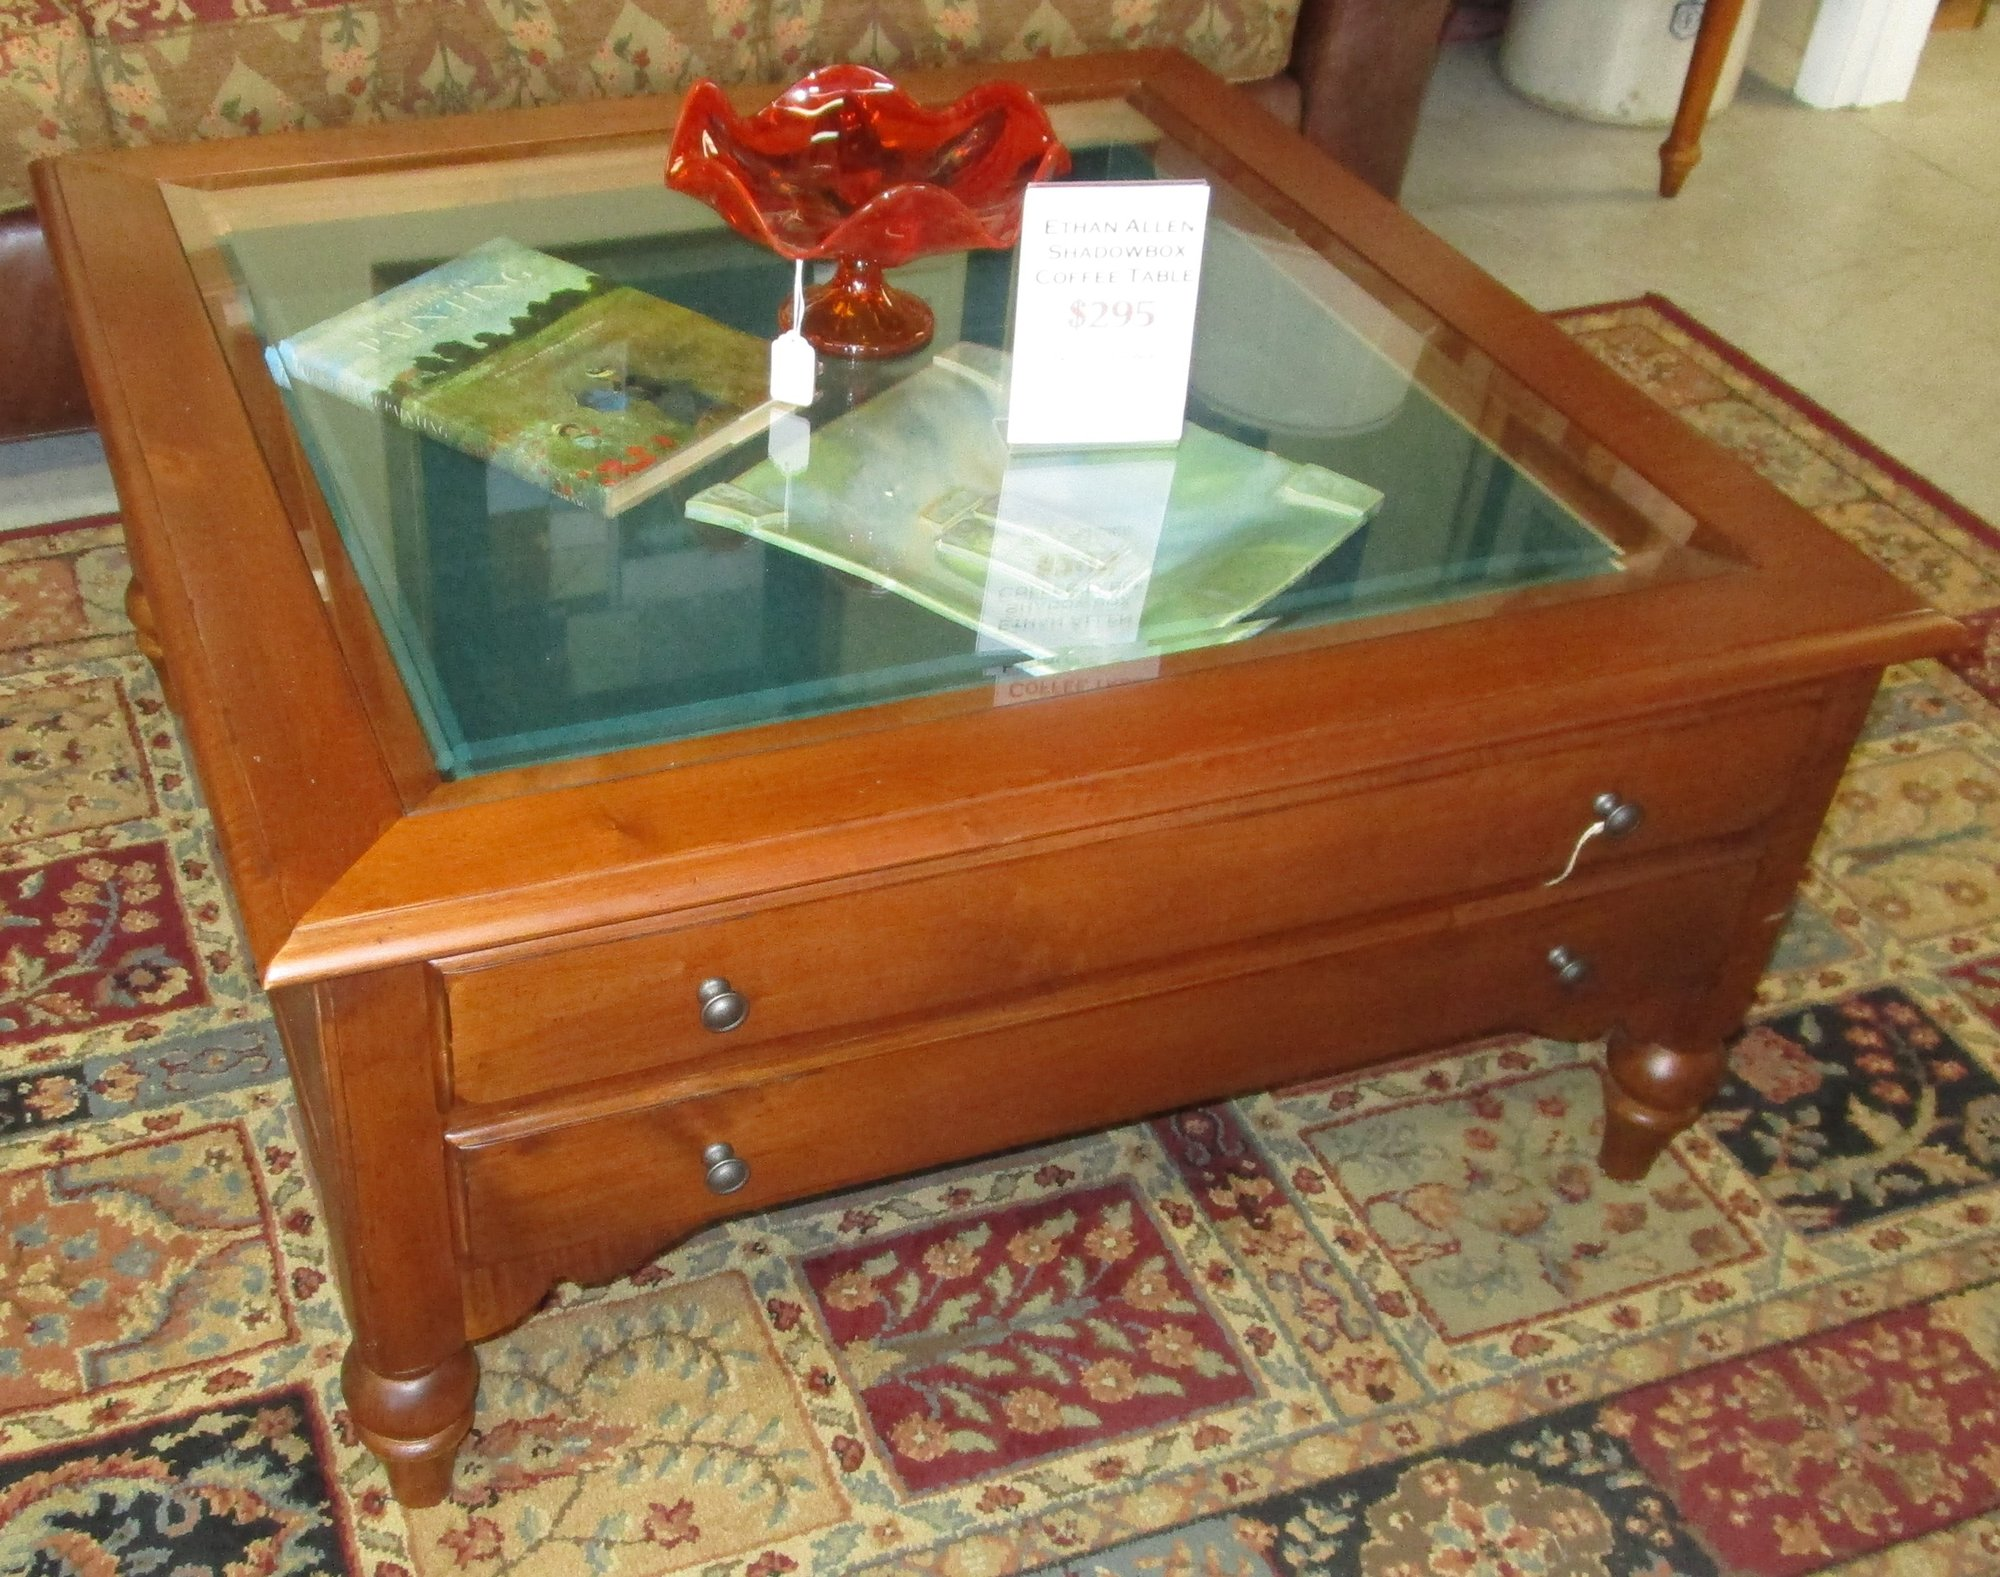 Used furniture gallery Glass box coffee table